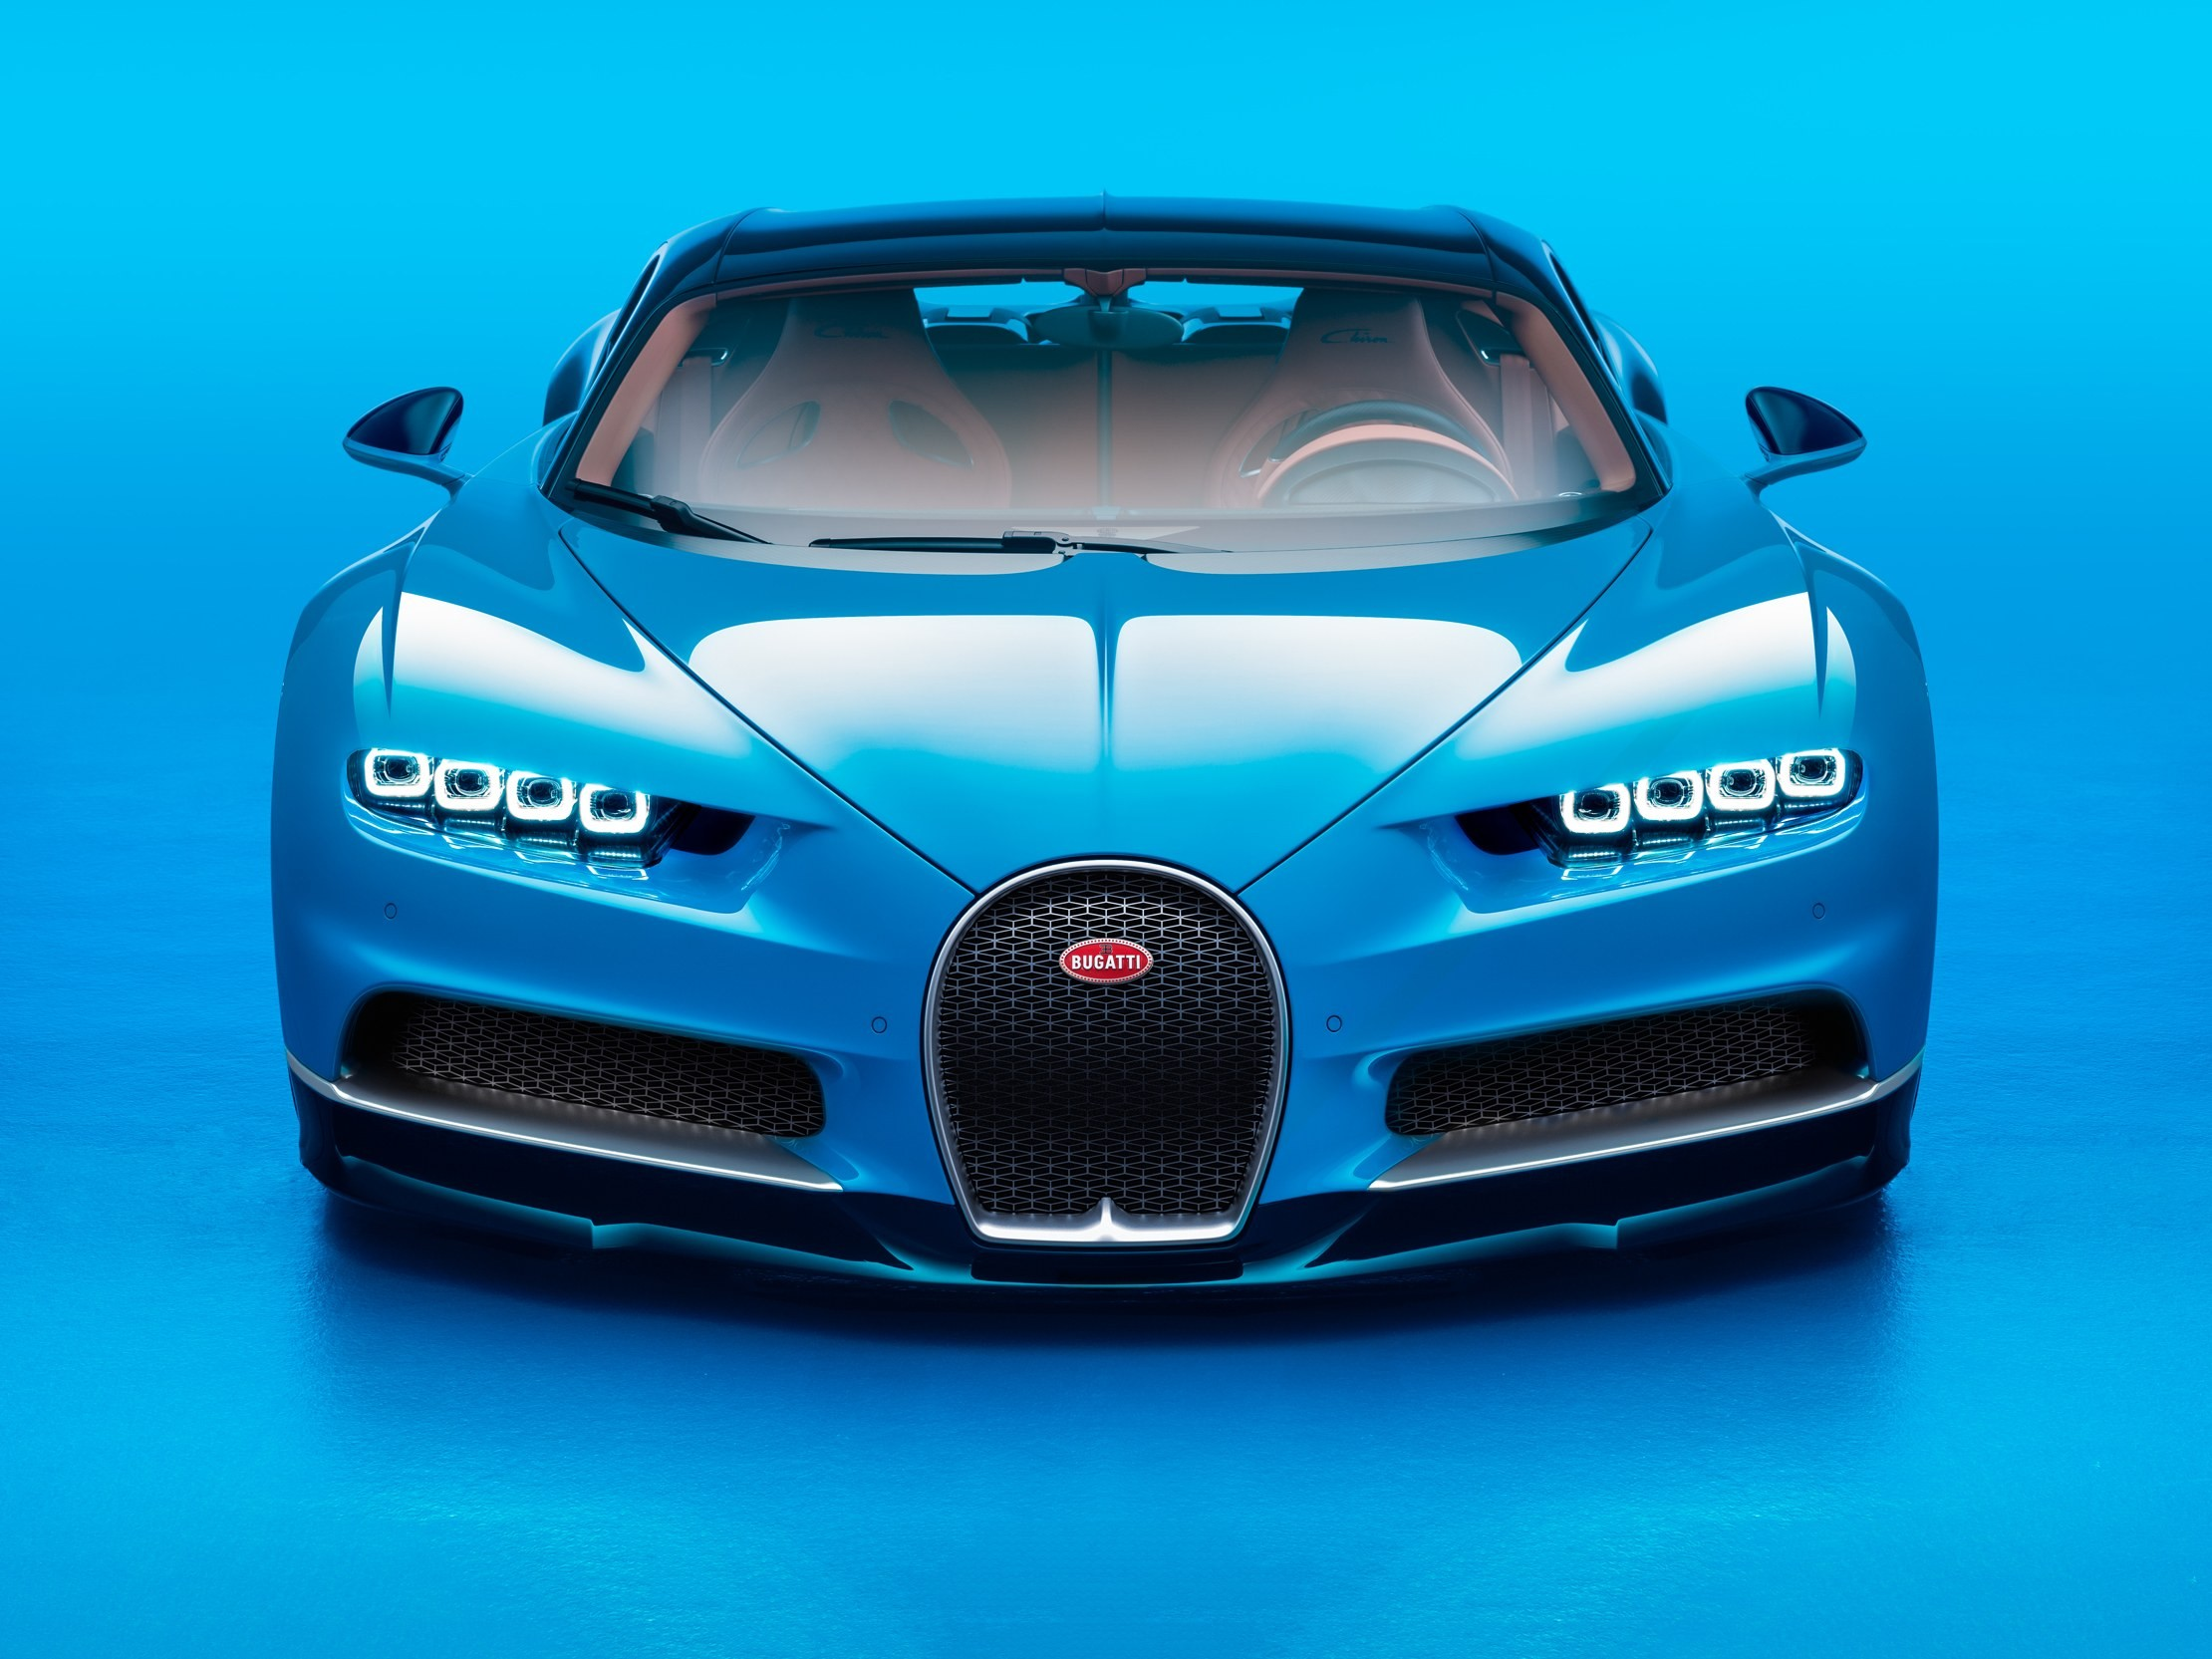 Bugatti Veyron Engine Diagram How Bugatti Crafted the Chiron the World S Last Truly Great Car Of Bugatti Veyron Engine Diagram